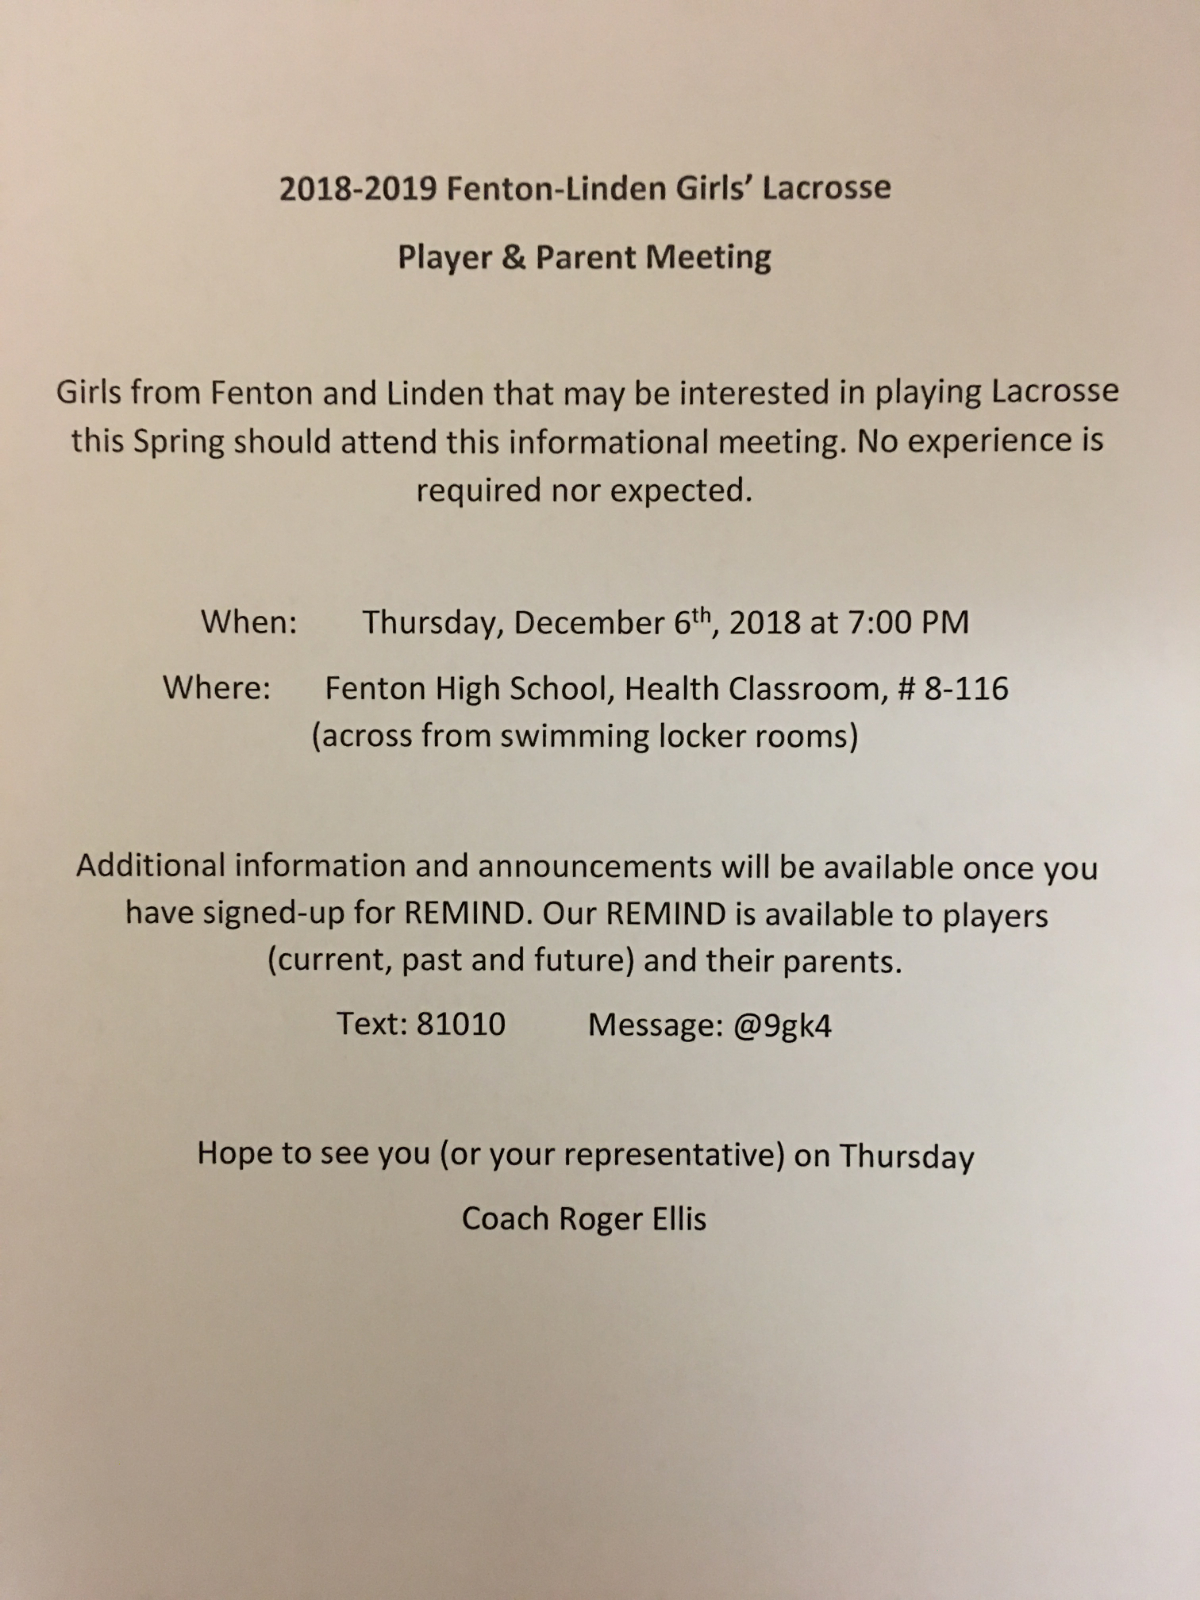 2019 Fenton-Linden Girls Lacrosse Player / Parent Meeting Information